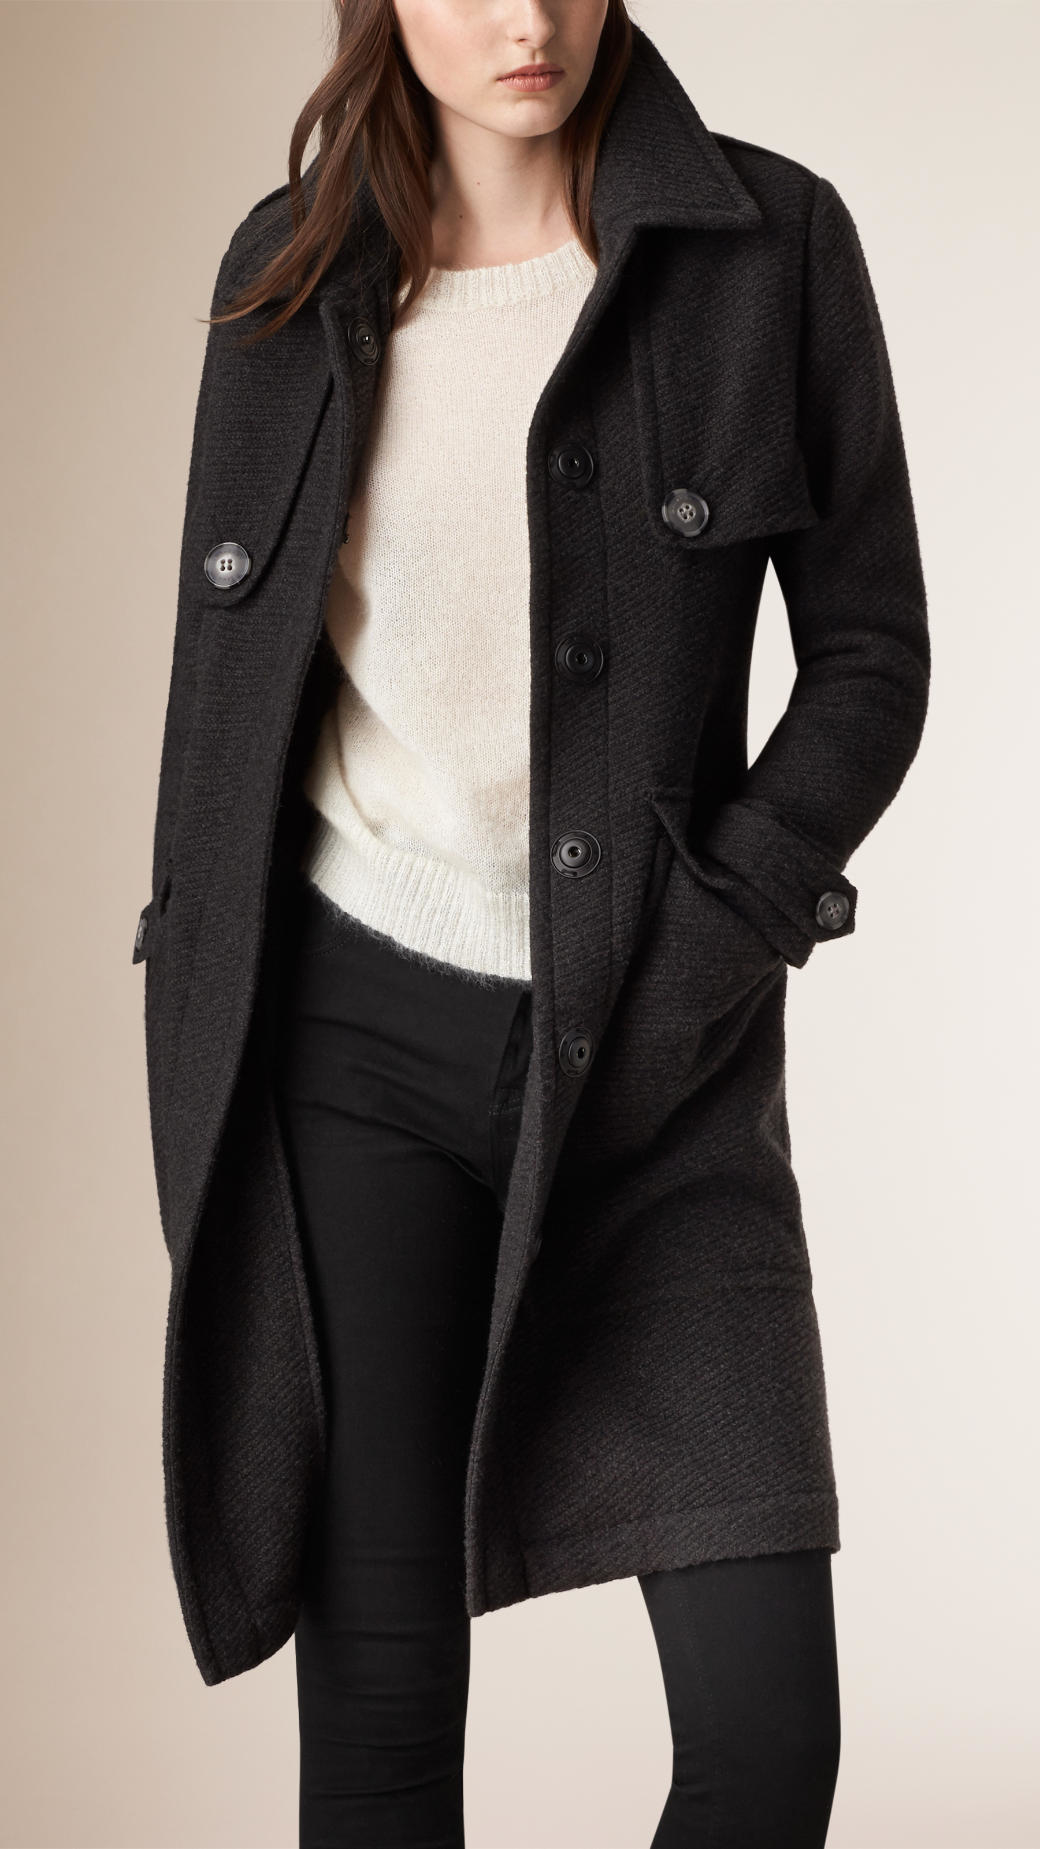 Burberry Cashmere Cardigan Coat in Gray | Lyst